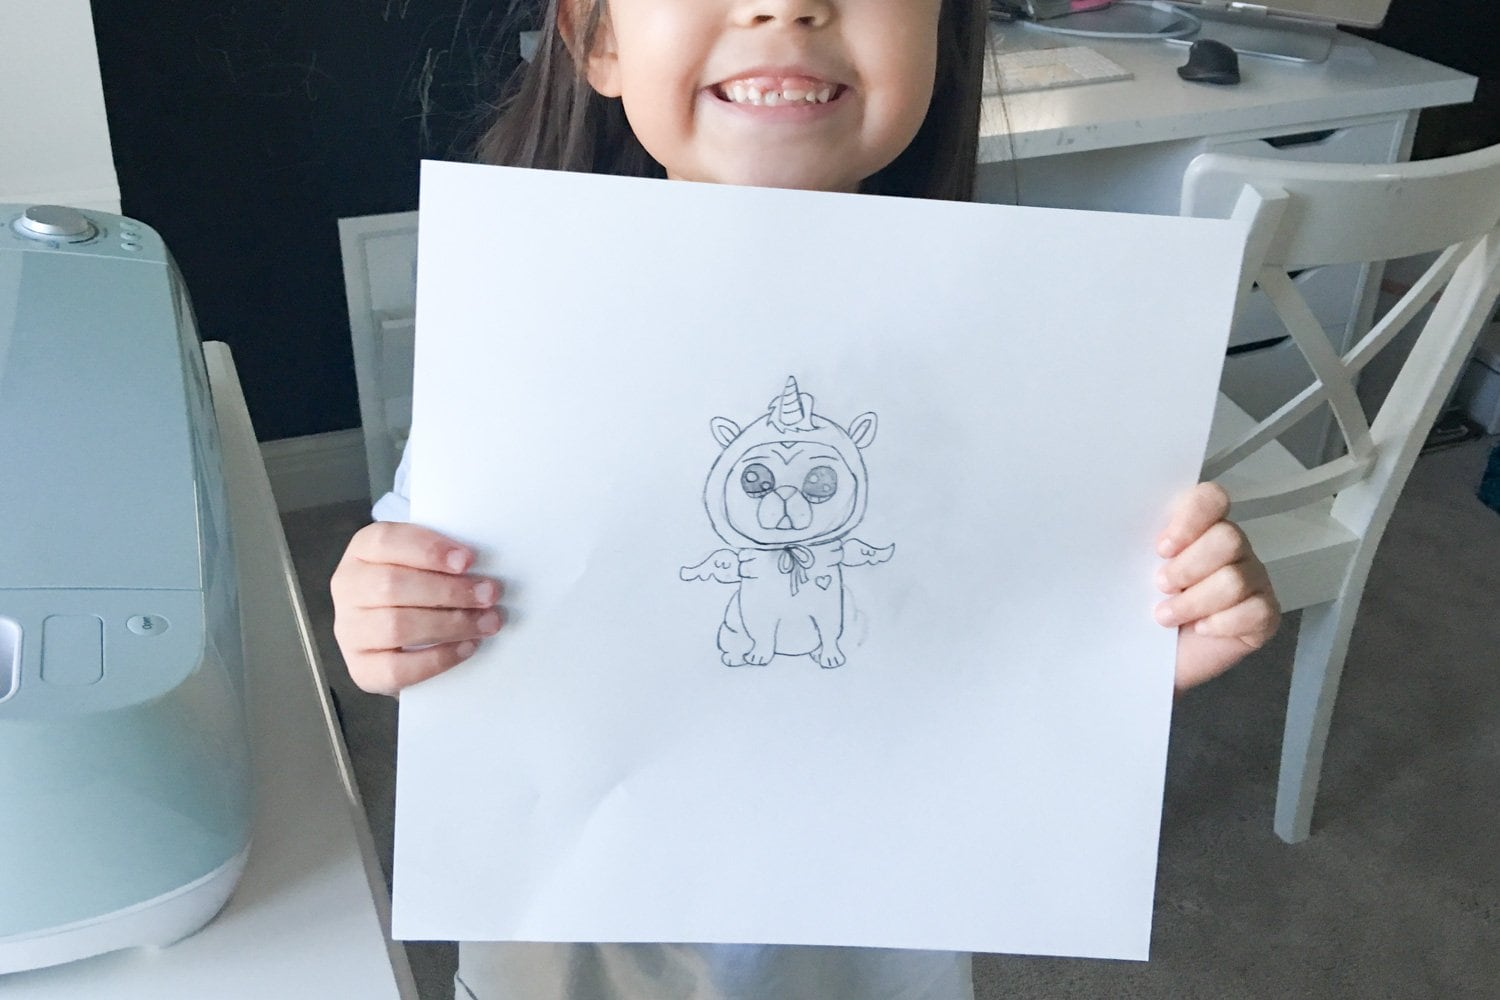 cricut infusible ink pens with drawing